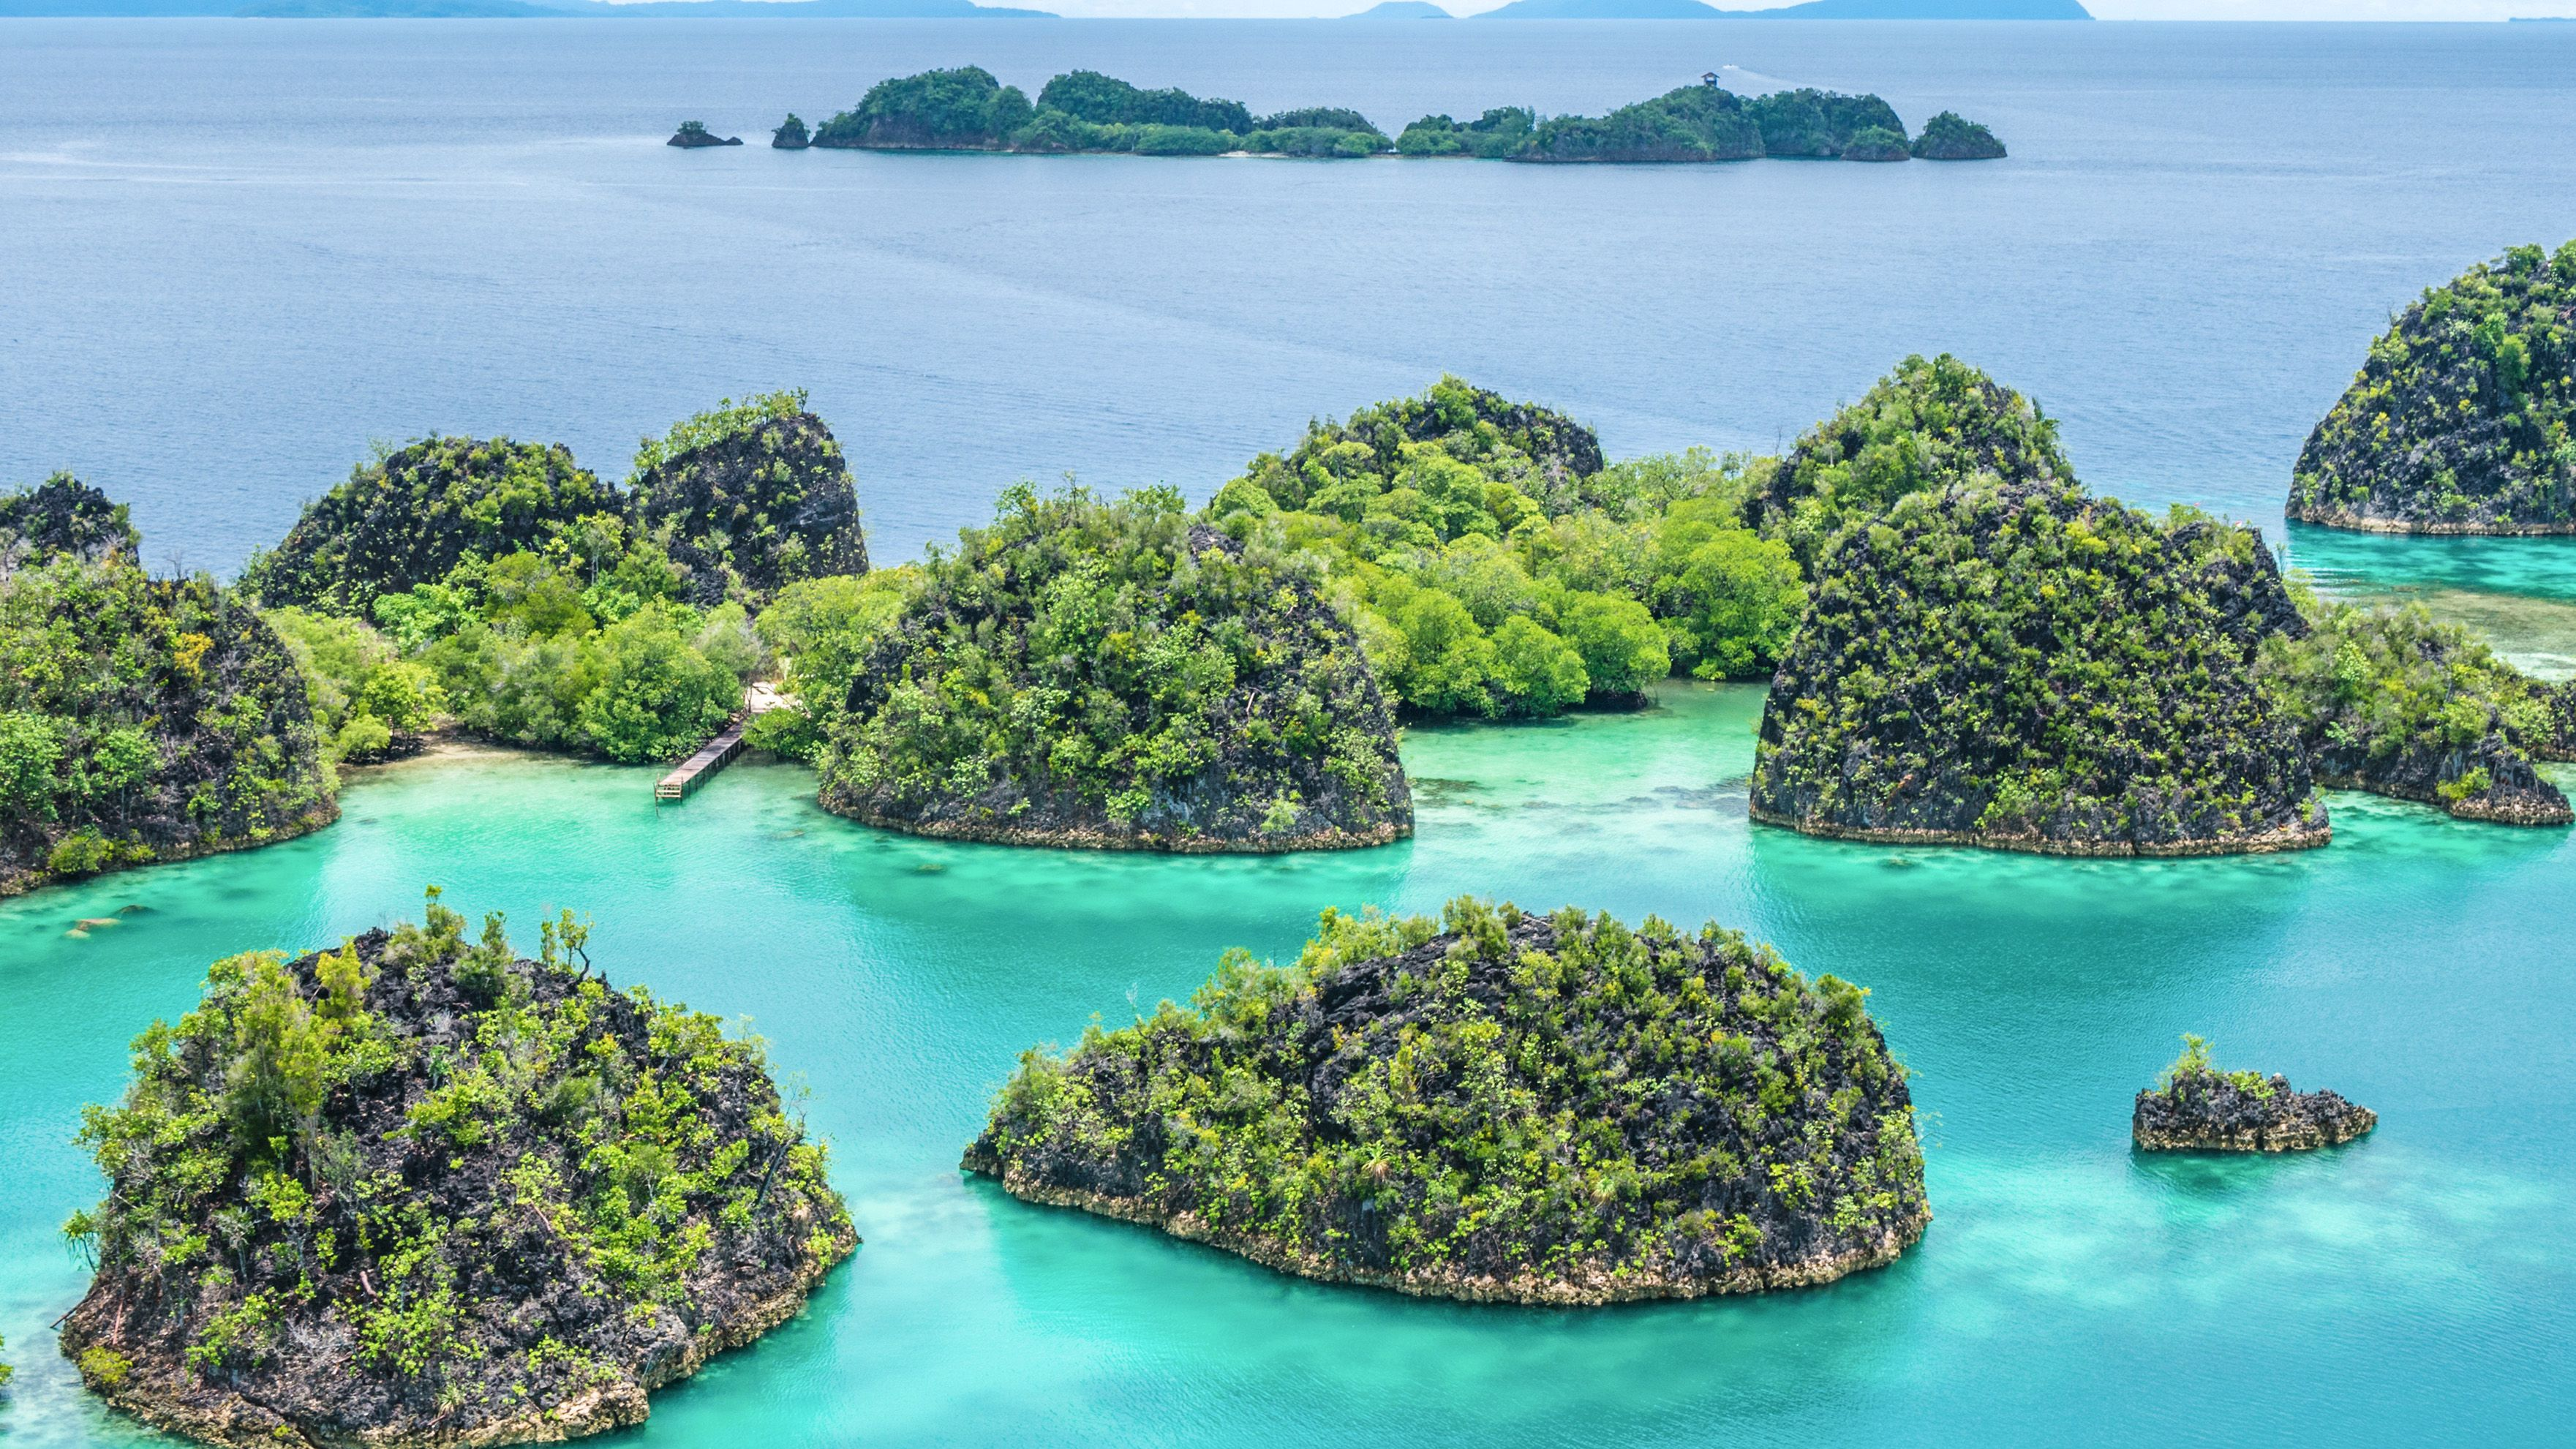 """<p>""""<a href=""""http://go.spot.com/2IAl/OHUMgcWpNA"""">Raja Ampat</a> is a series of islands in the remote western region of Indonesia. They require a bit of work to get to—a couple buses, two flights, and two boat rides—but they're well worth the long journey! The diving is amazing—Raja Ampat has the most pristine underwater marine life I've ever seen. But even if you don't dive, all the island piers have the most stunning coral reefs right under the dock! Visit Arborek village for top-notch snorkeling, Sawinggrai village to feed the fish, or hike Pianemo for a view out over islands that create the shape of a star."""" —<em data-redactor-tag=""""em"""">Sher, photographer and editor behind </em><em data-redactor-tag=""""em""""><a href=""""http://www.shershegoes.com/"""">Sher She Goes</a></em></p><p><span class=""""redactor-invisible-space"""" data-verified=""""redactor"""" data-redactor-tag=""""span"""" data-redactor-class=""""redactor-invisible-space""""></span></p>"""